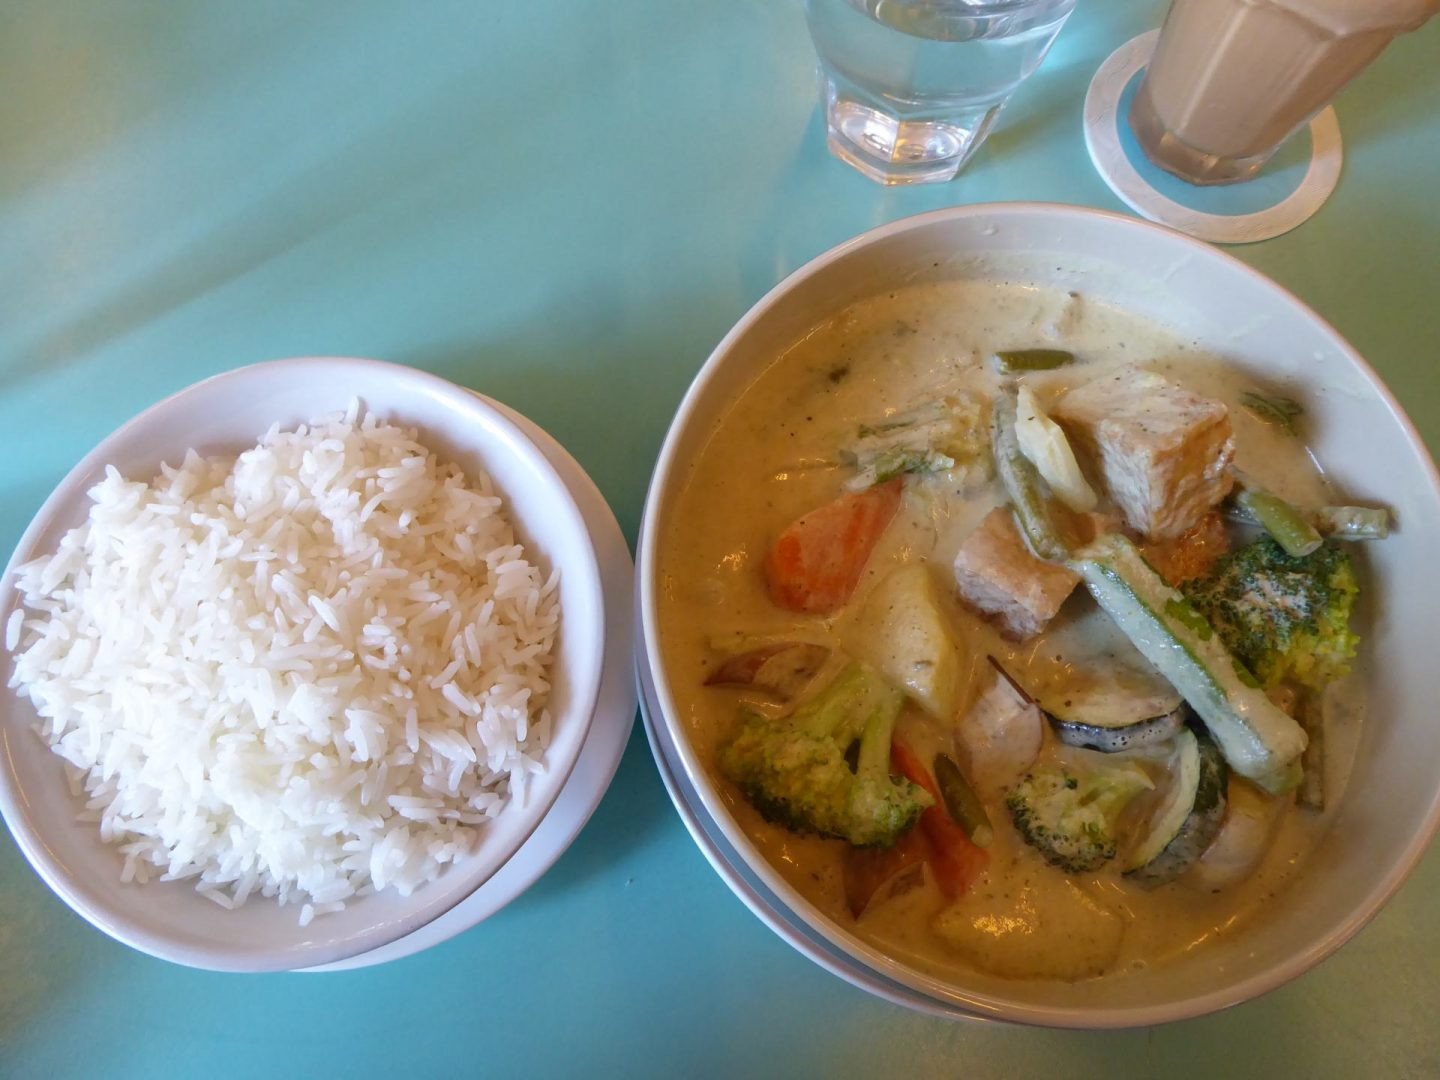 Vegetarian Green Thai Green Curry is one bowl, rice in the other.